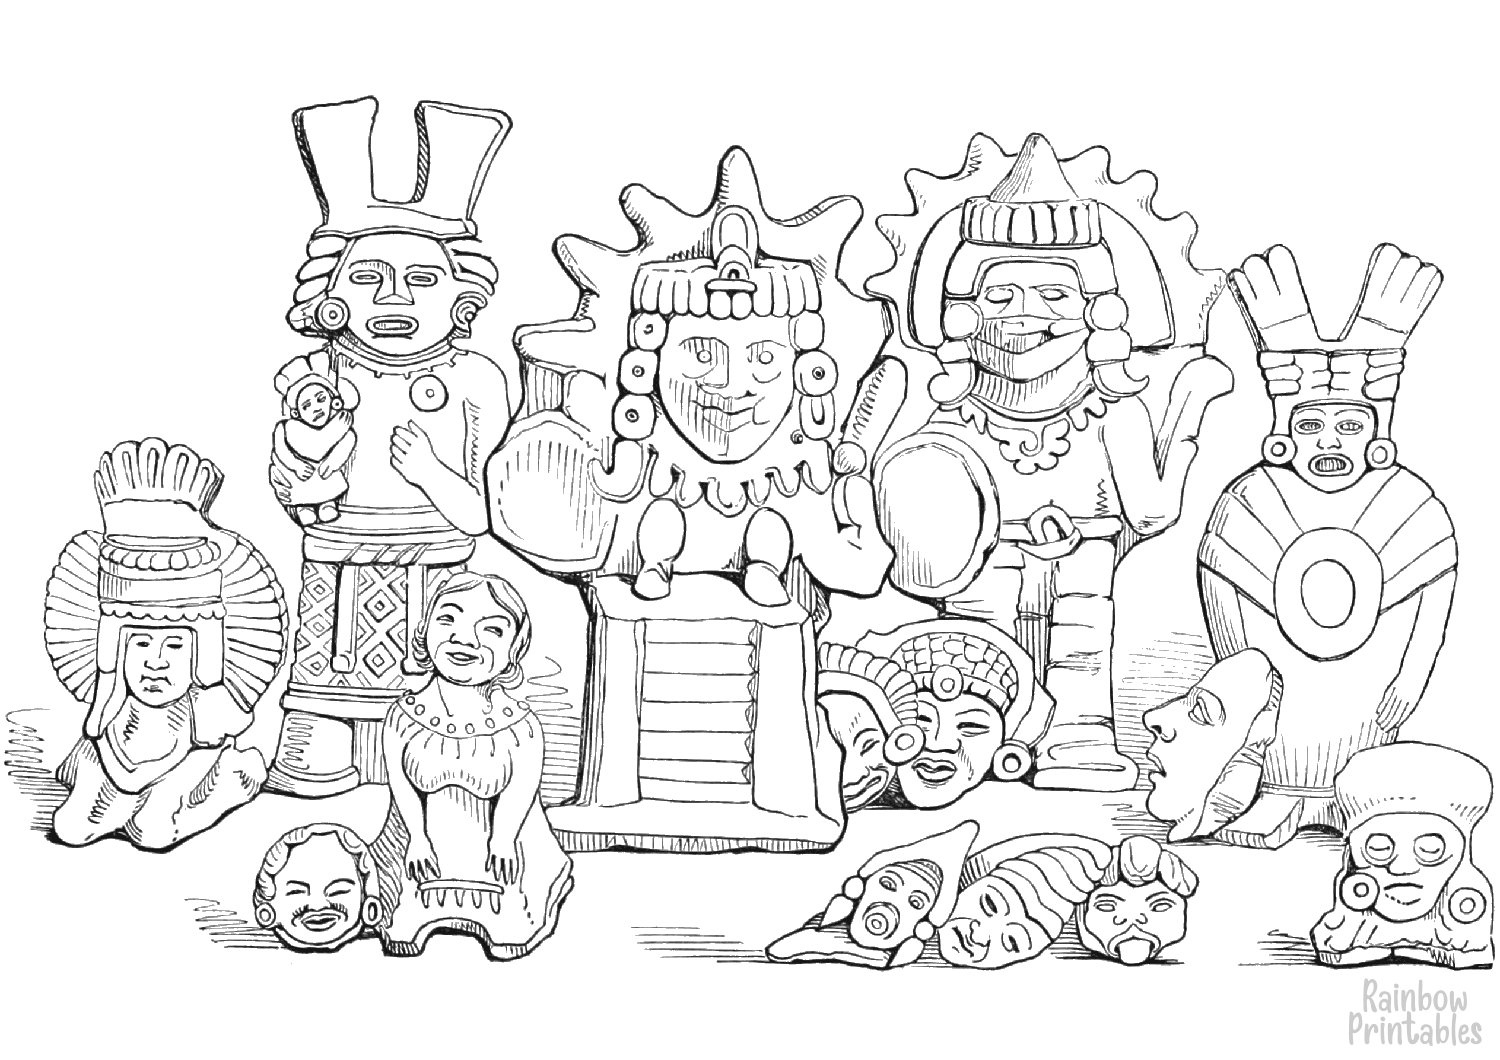 cartoon-line-art-world-cultures-aztec-clay-coloring-page-for-kids